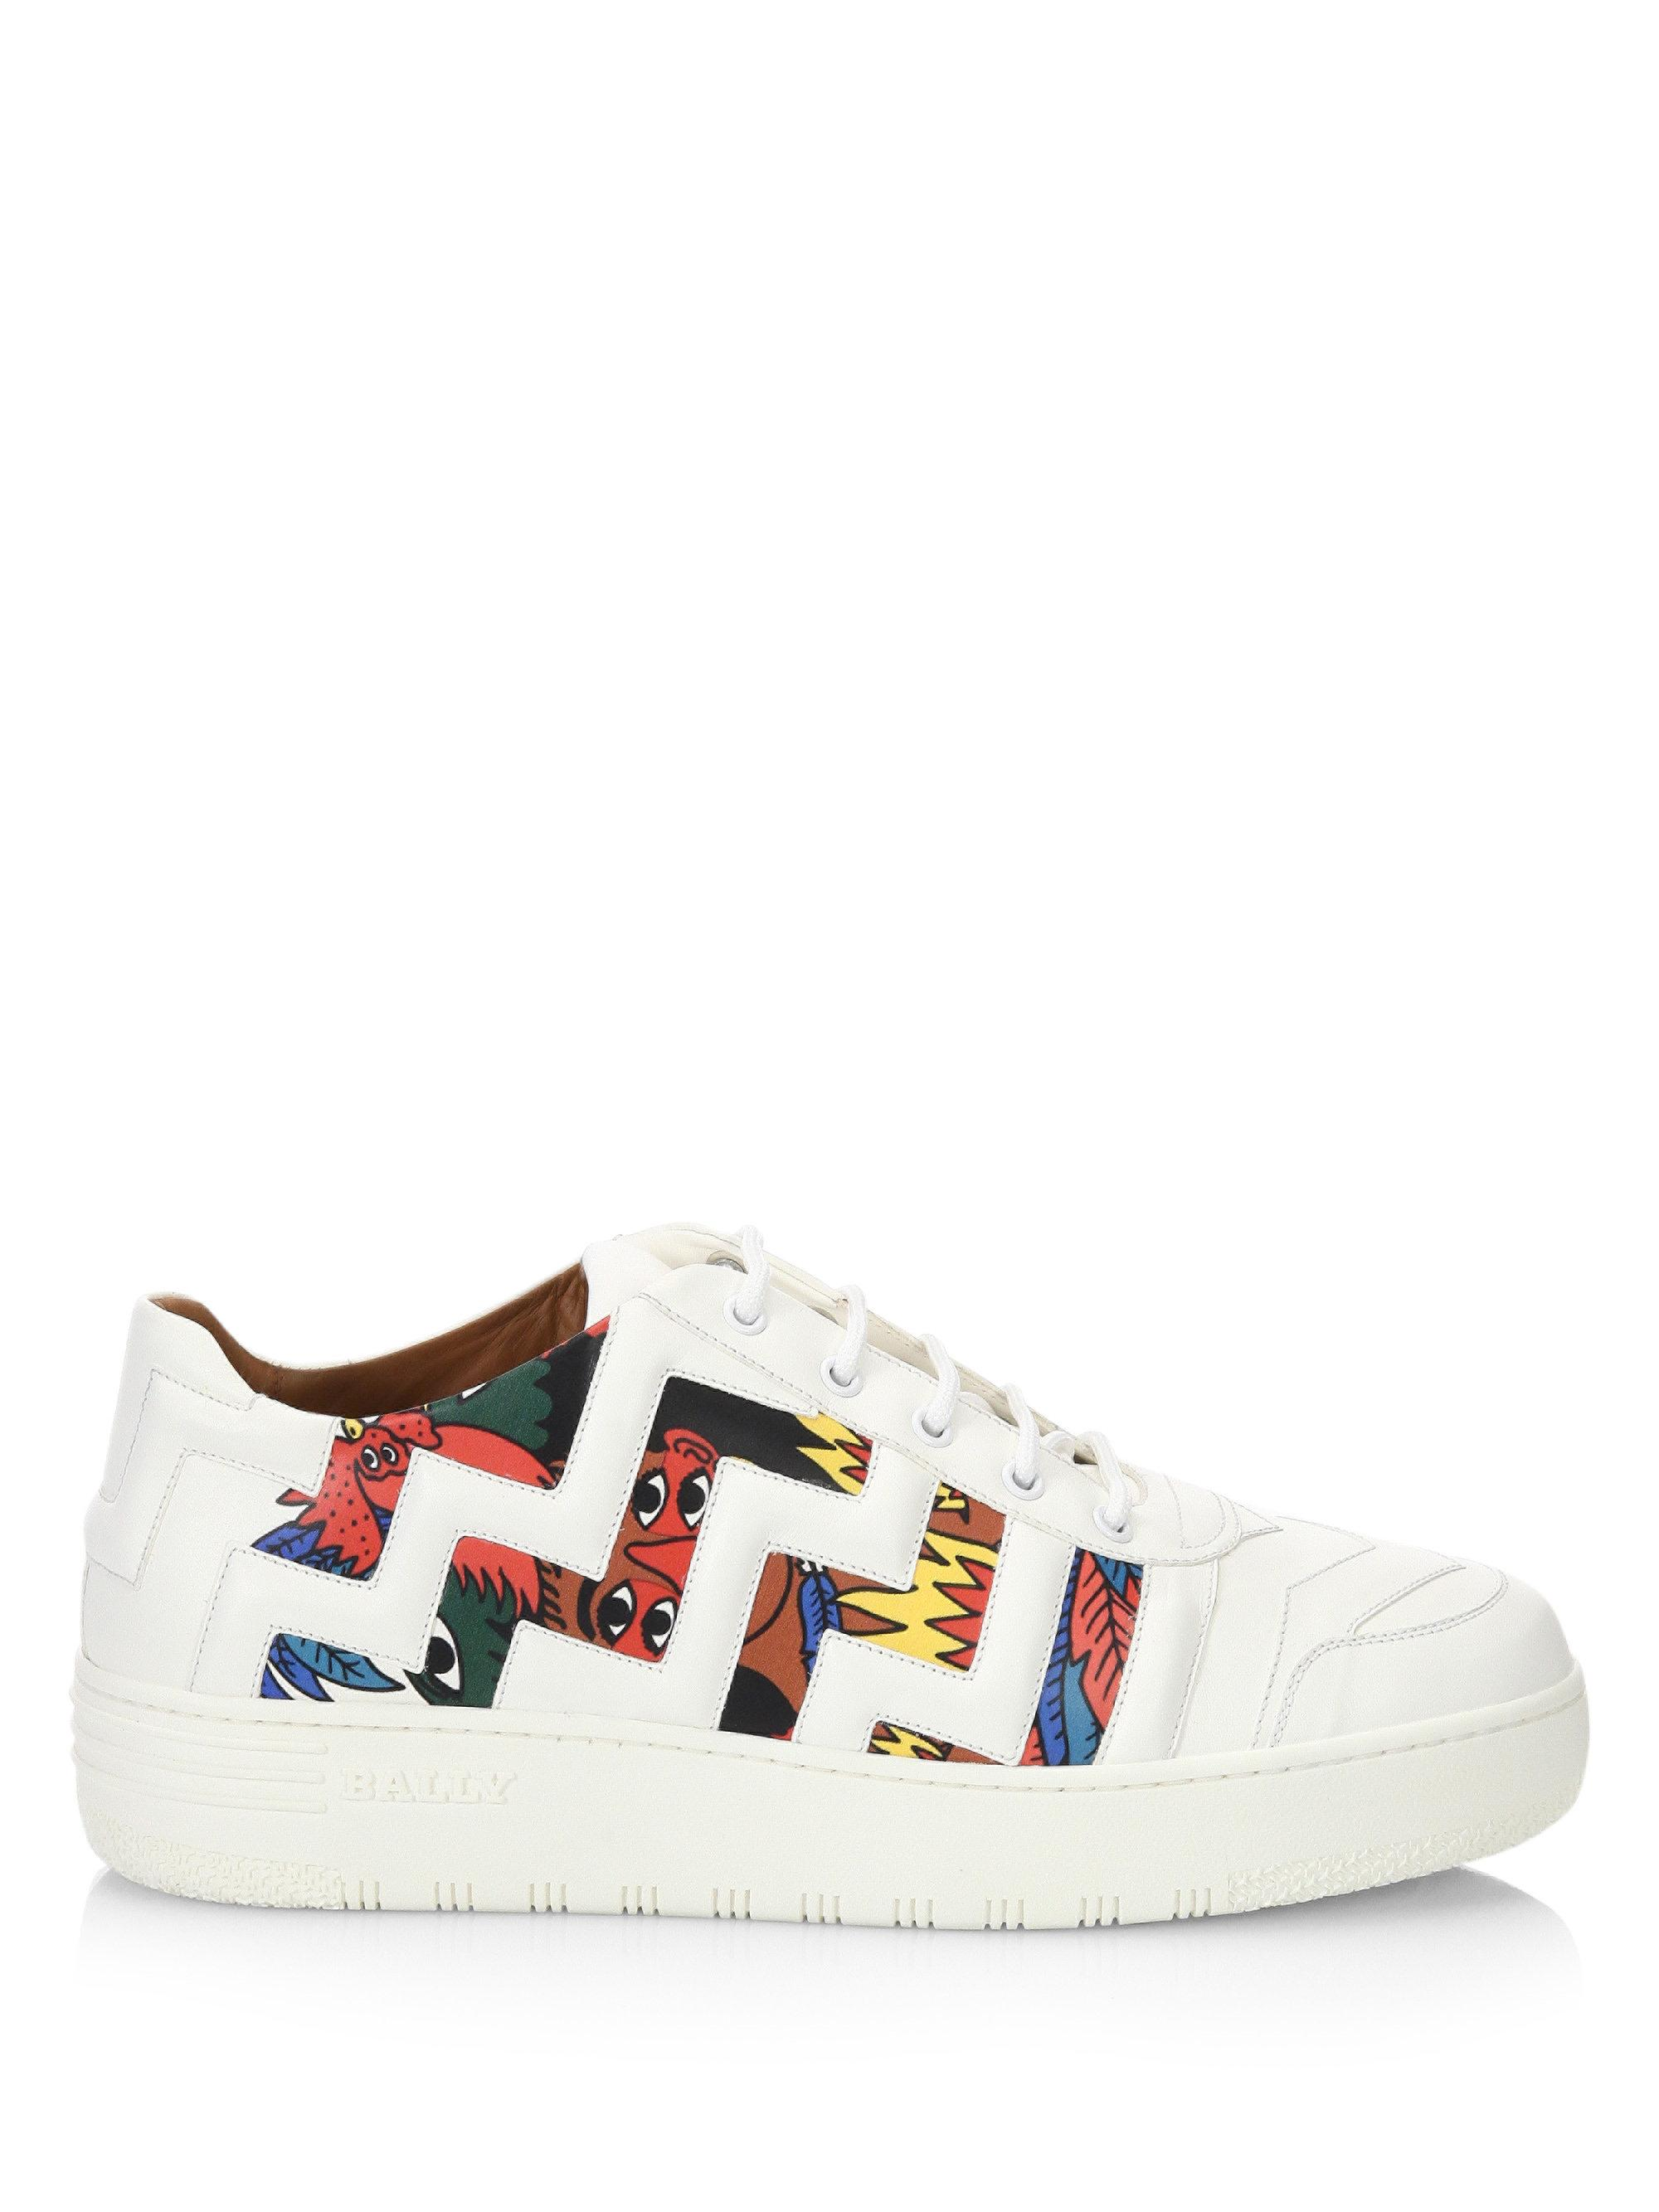 380ce83f9ff041 Bally X Swizz Beatz Leather Sneakers in White - Lyst